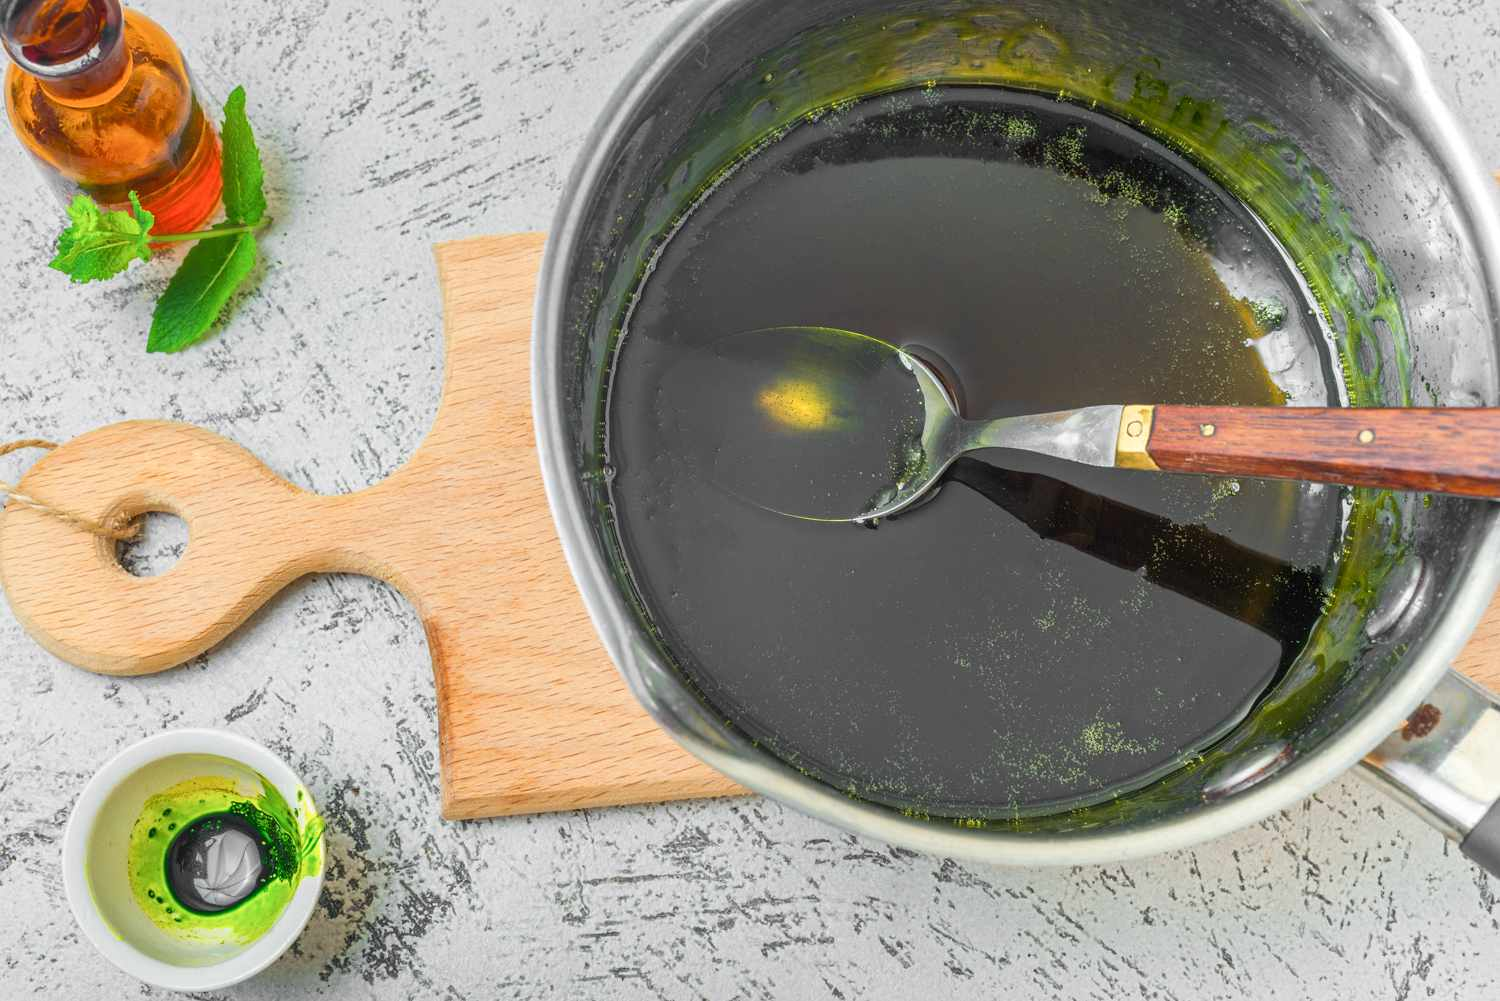 Stirring in green syrup for lollipops